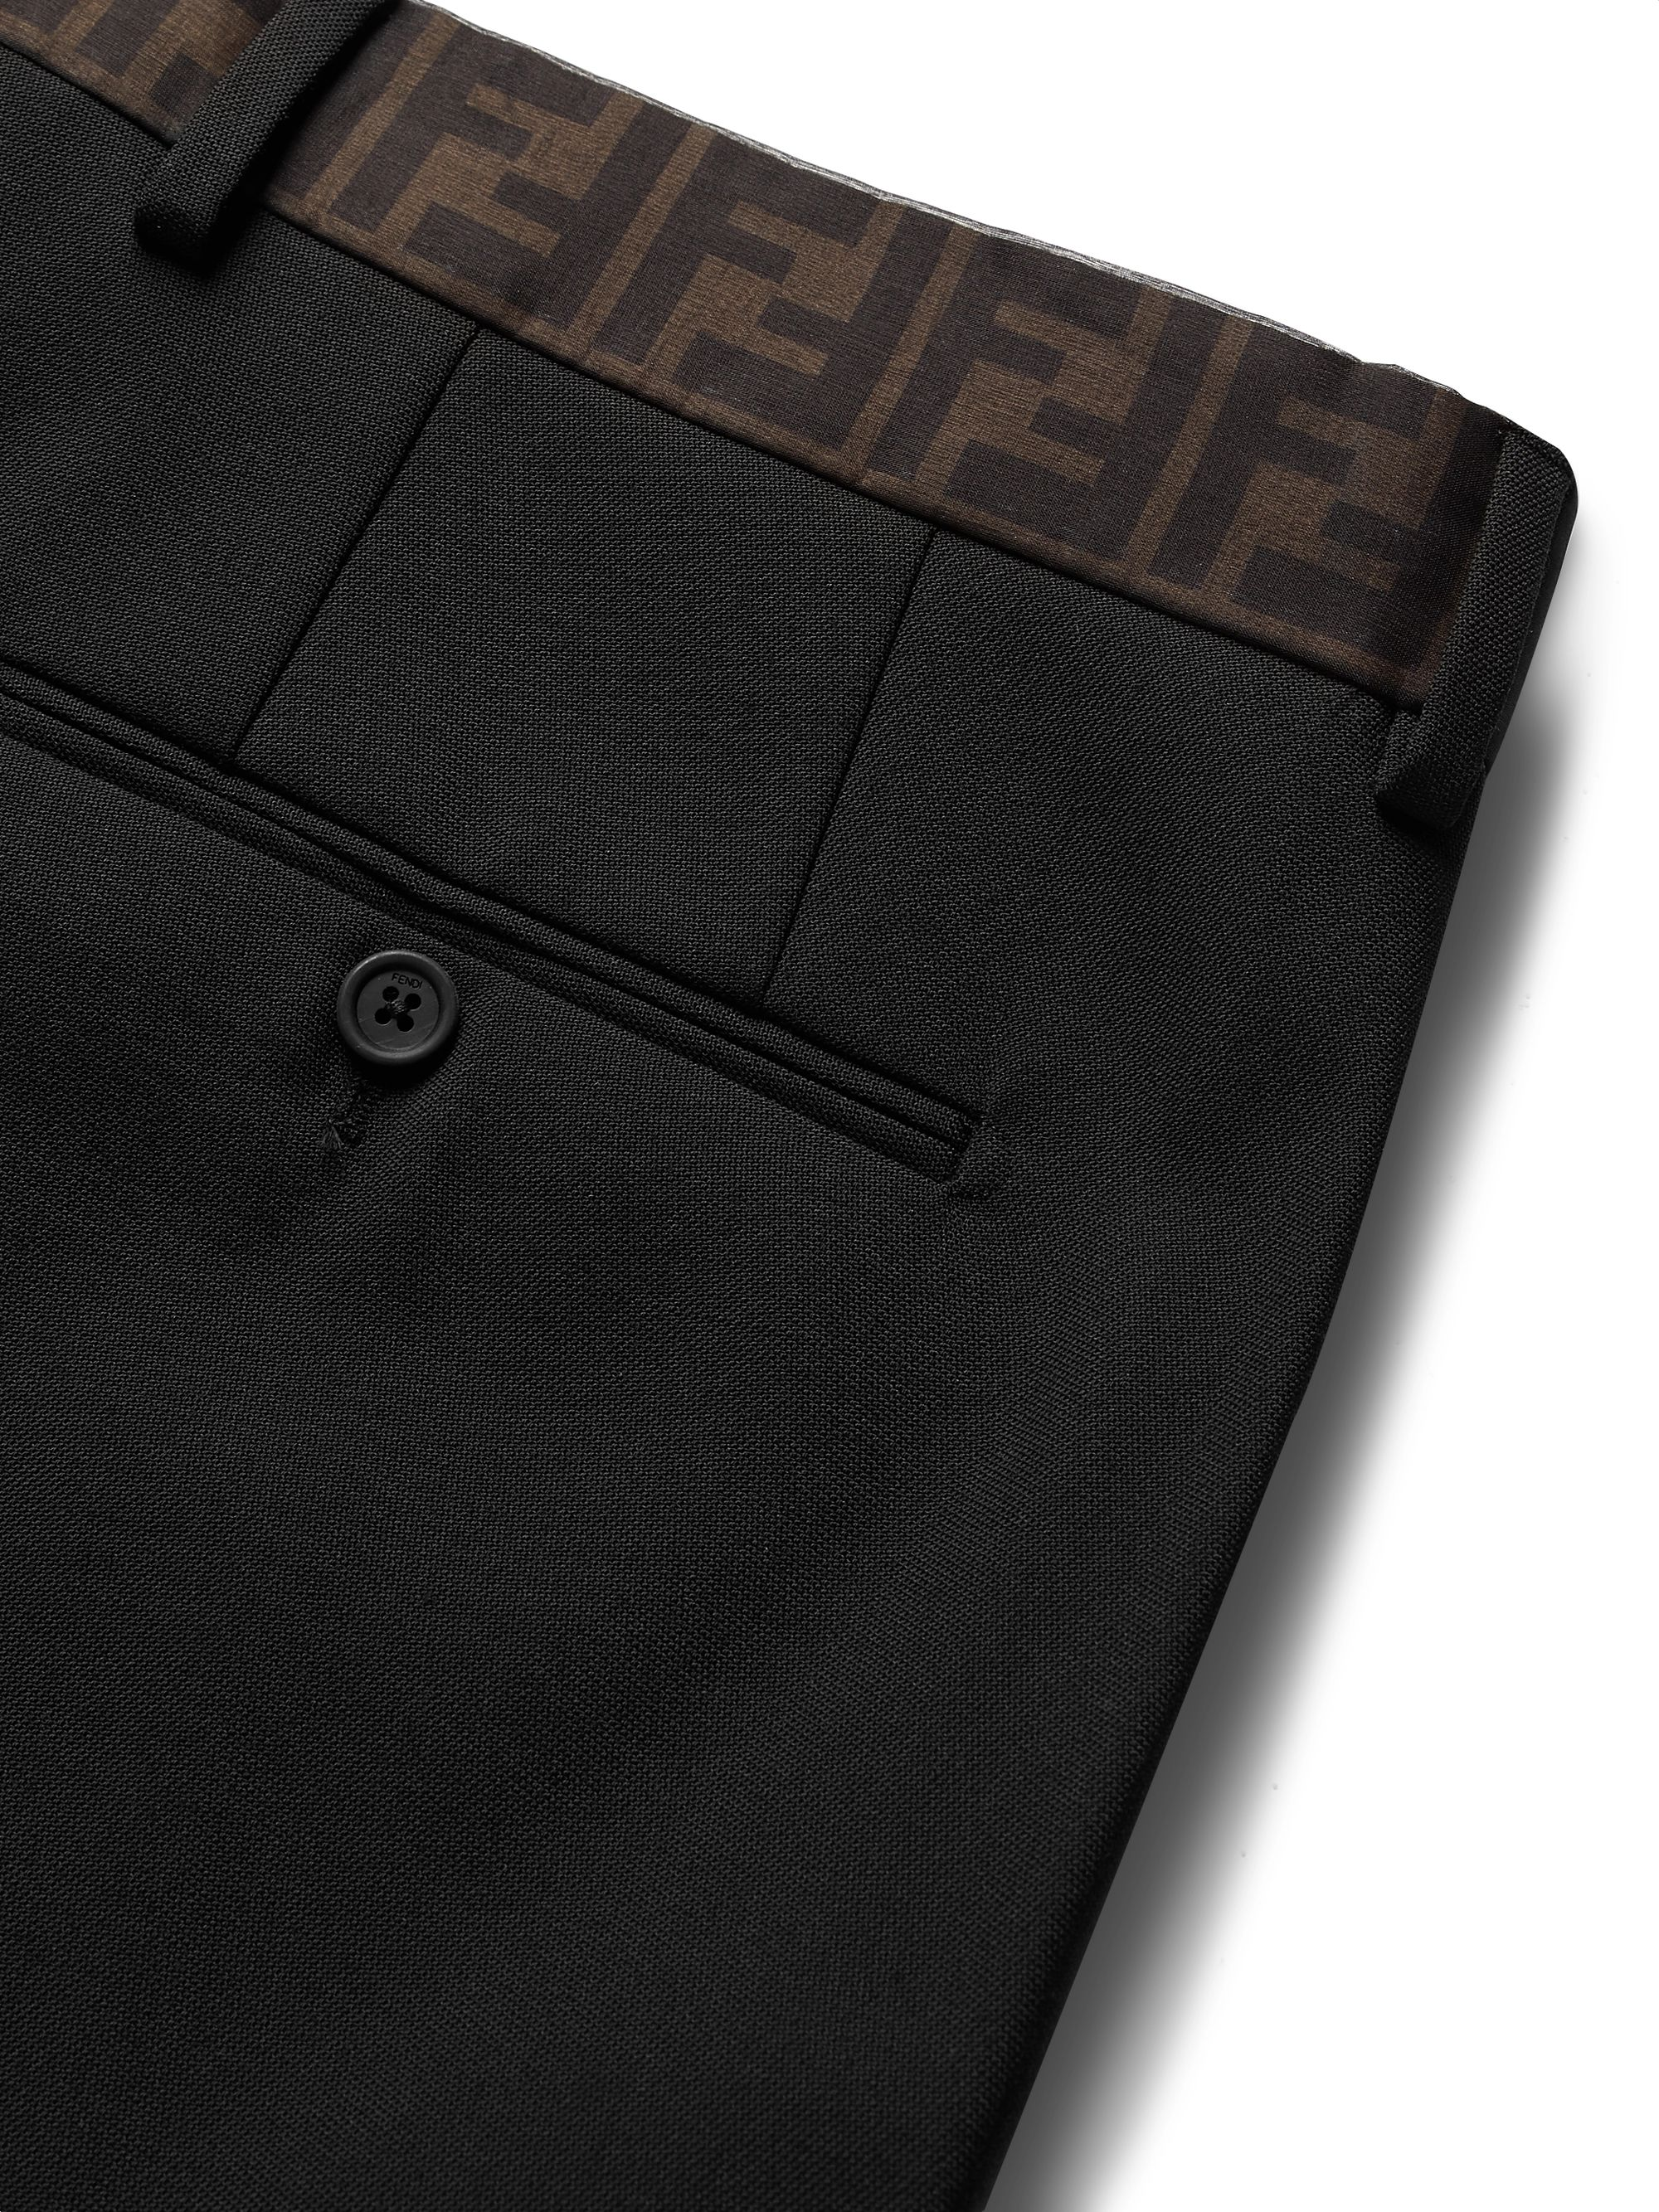 Fendi Black Slim-Fit Logo-Trimmed Woven Trousers